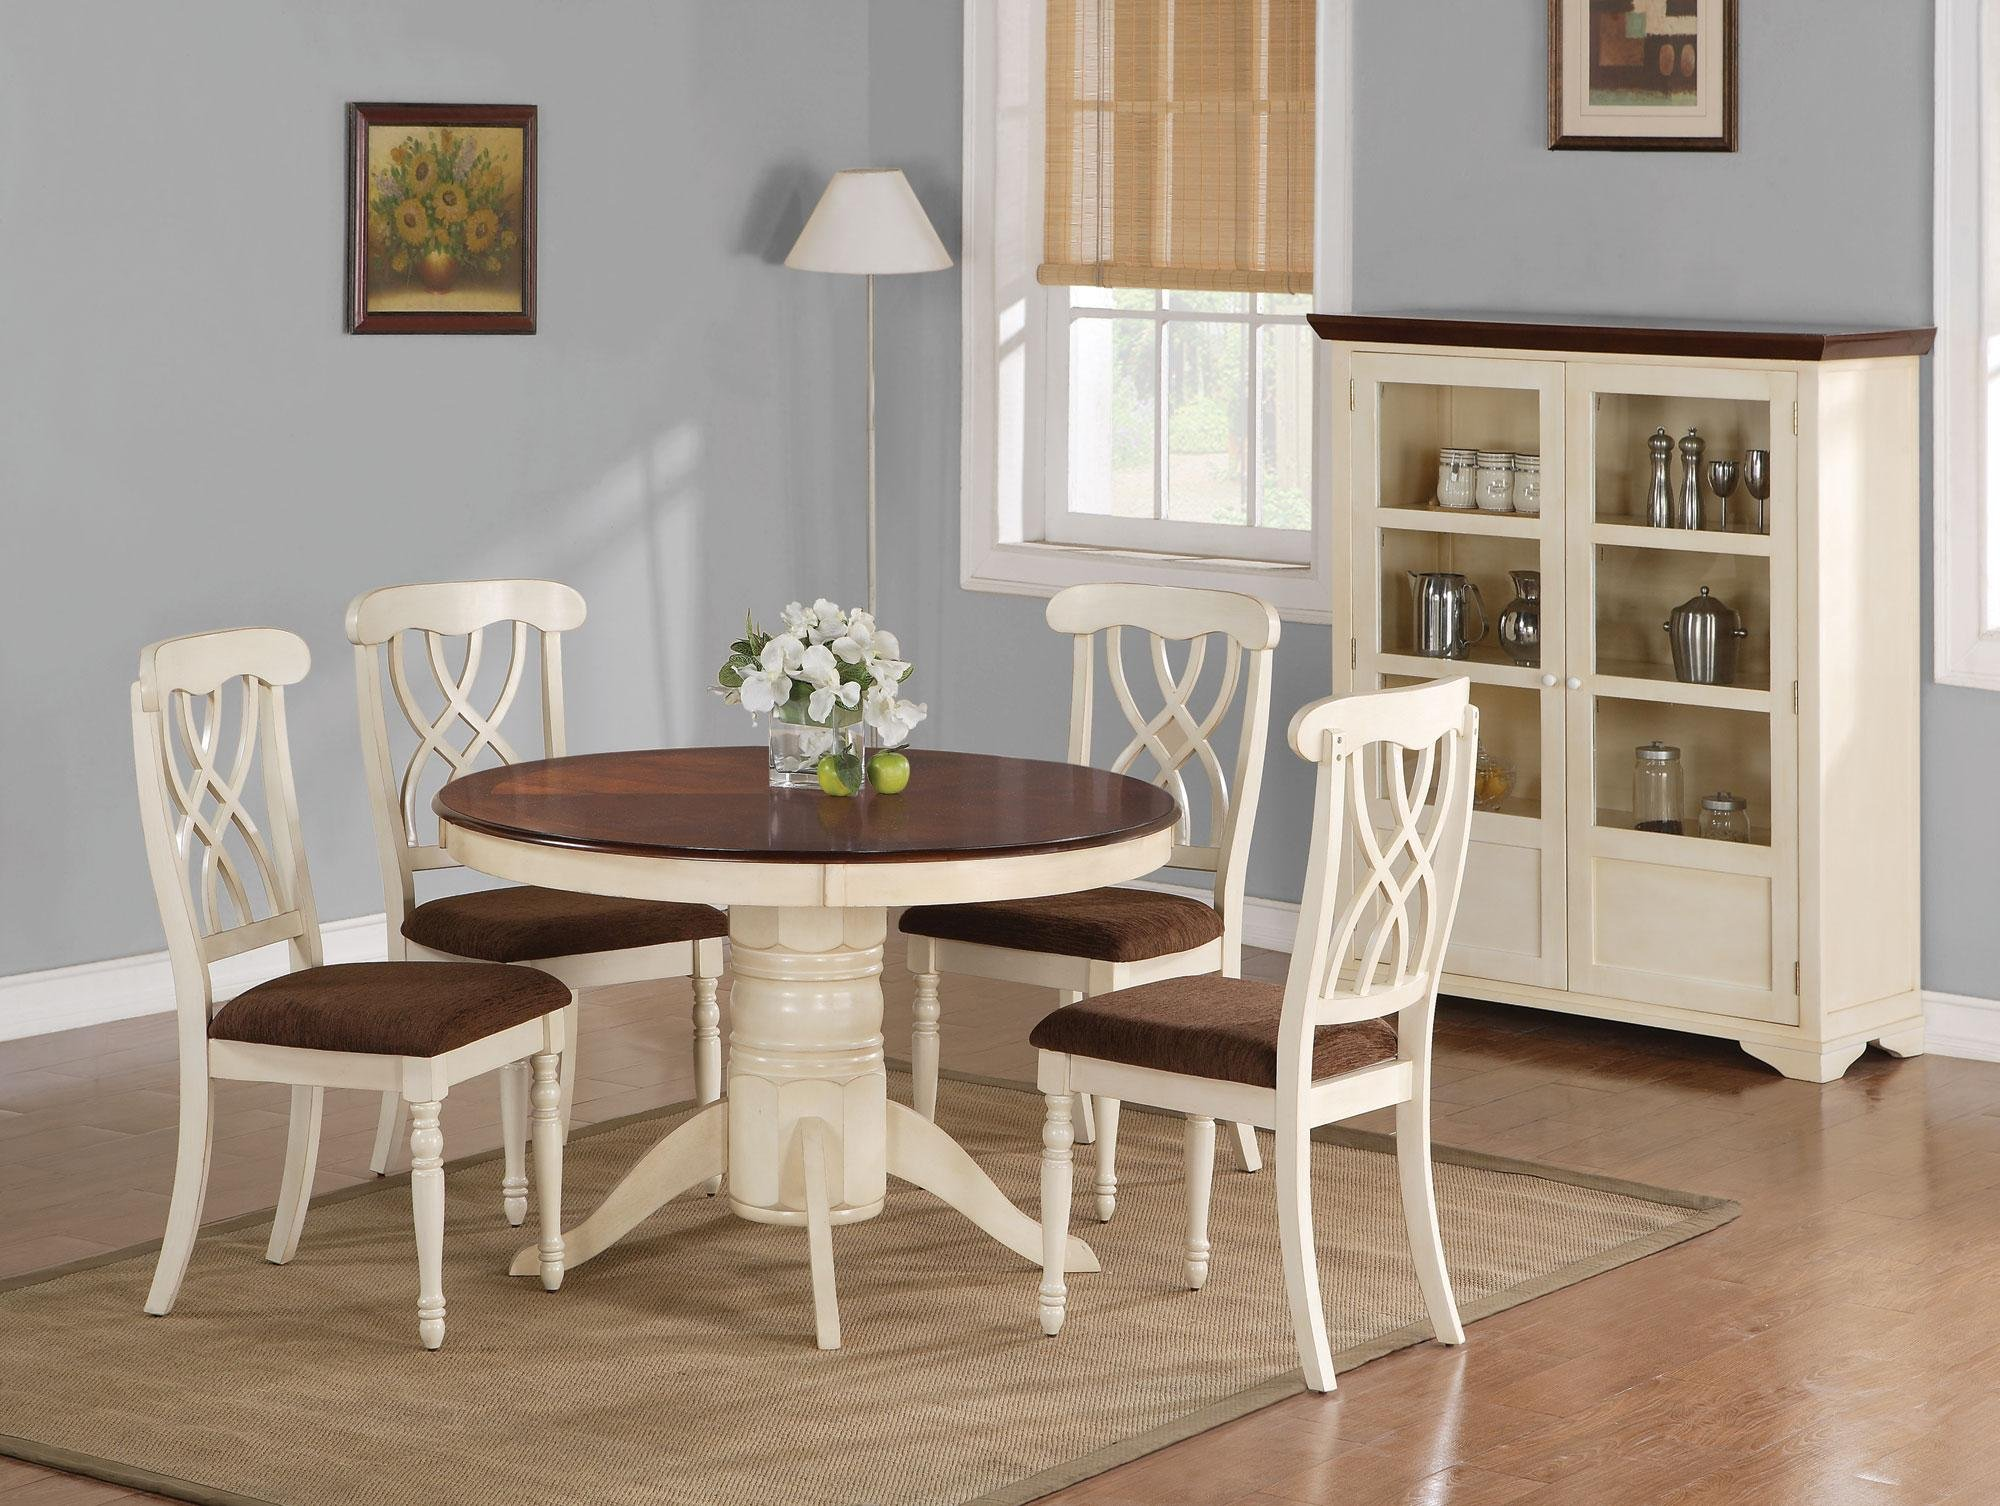 White Round Wooden Kitchen Table With Chairs And Flower Brown Carpet Standing Lamp At Room Corner